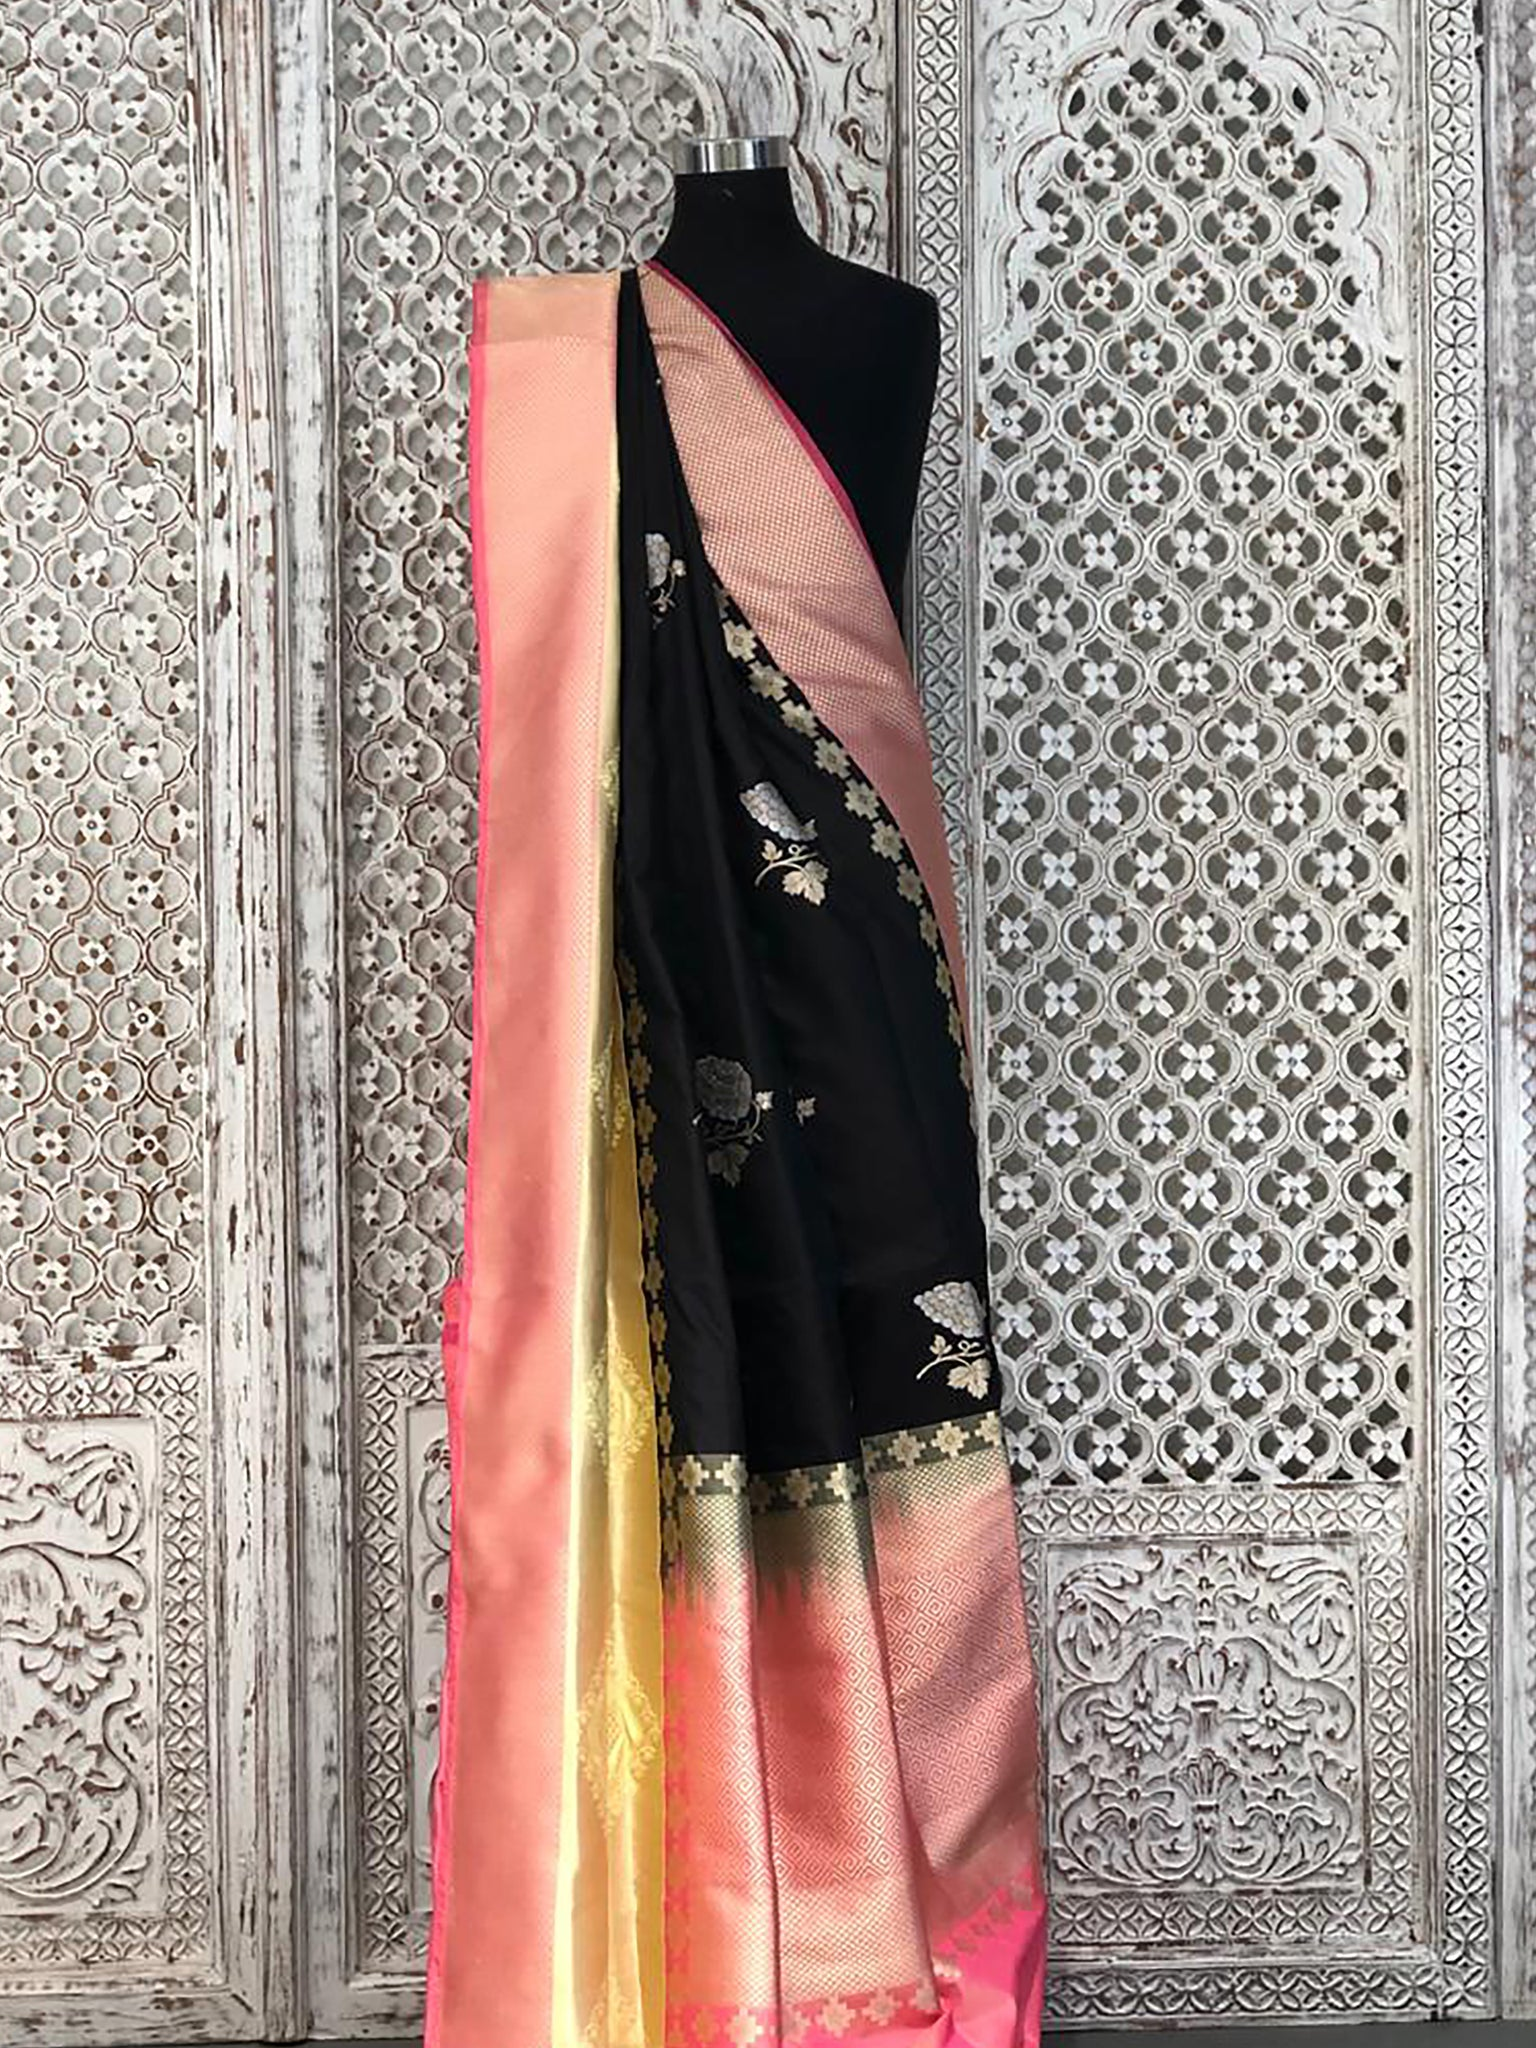 Black Banarasi Saree with Contract Pink Tissue Border and Angoor Butti